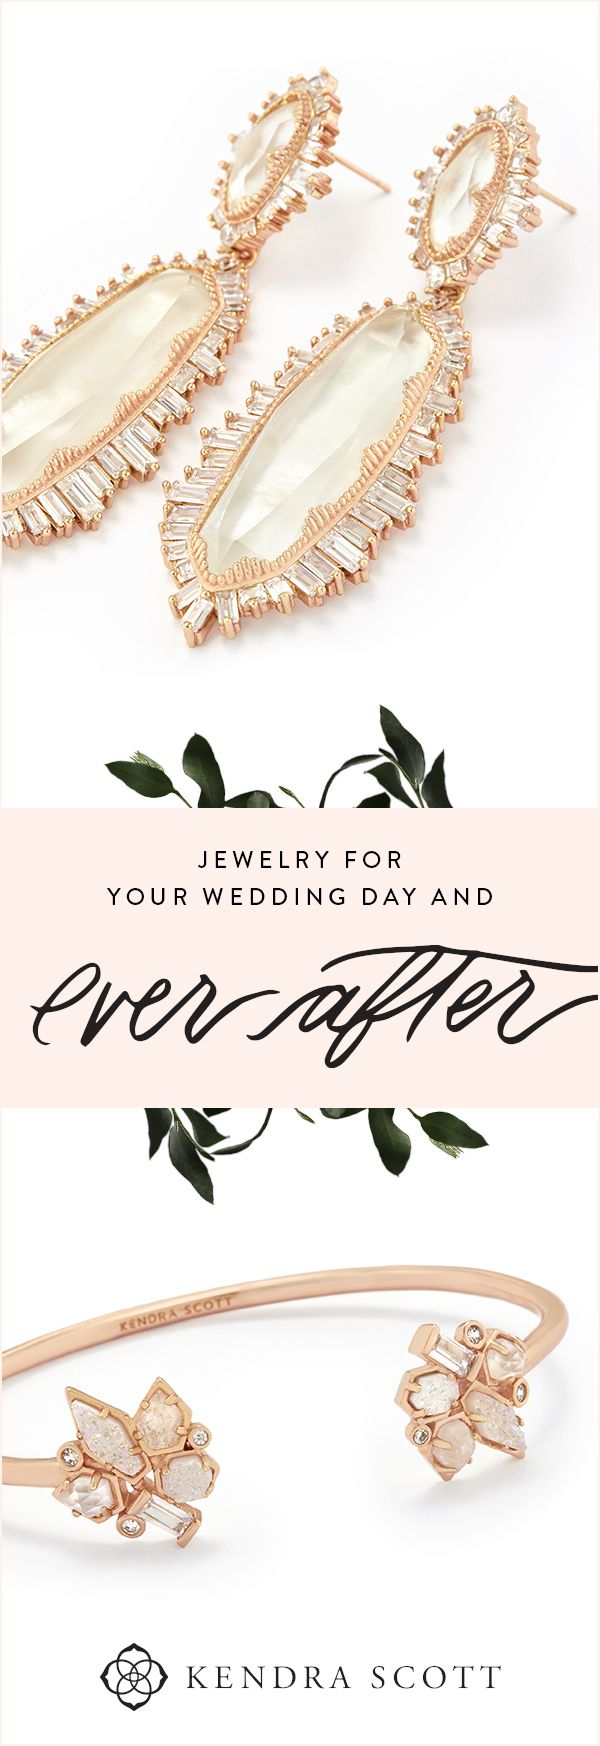 Make your wedding day look elegant and unforgettable. Jewelry for brides, bridesmaids, mothers of the bride and groom, cufflinks for him and more. Celebrate your ever after with the Kendra Scott Bridal Jewelry Collection. Shop our Weddings Collection today!